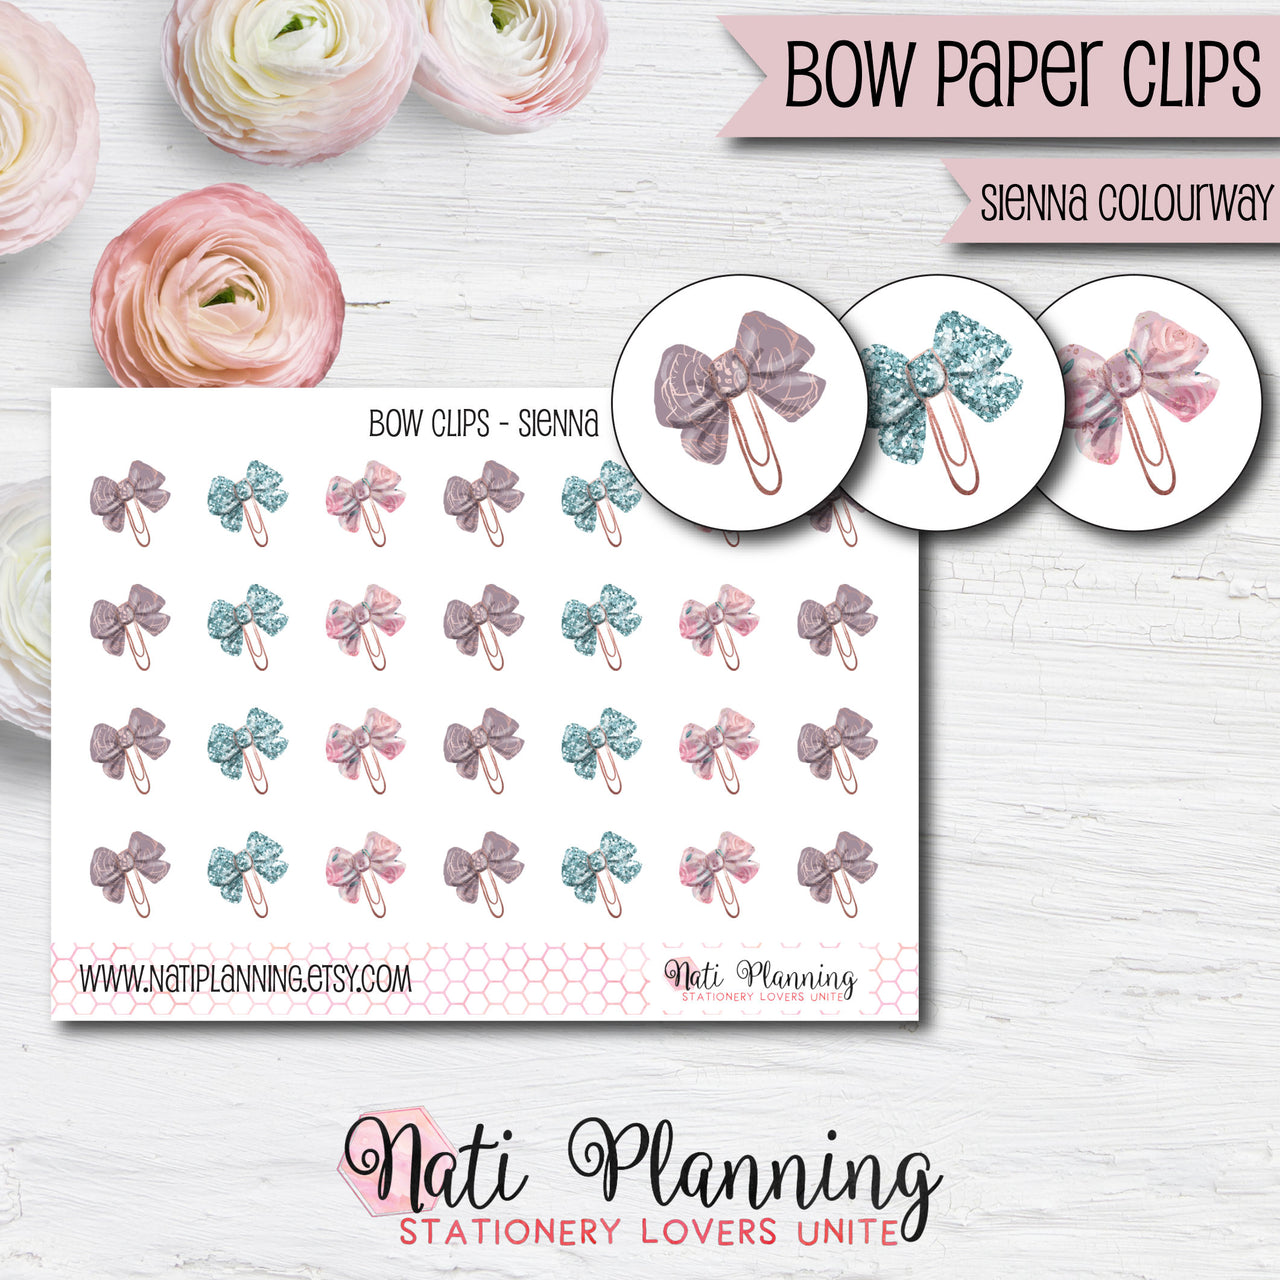 Bow Paper Clip Stickers - Sienna Colourway